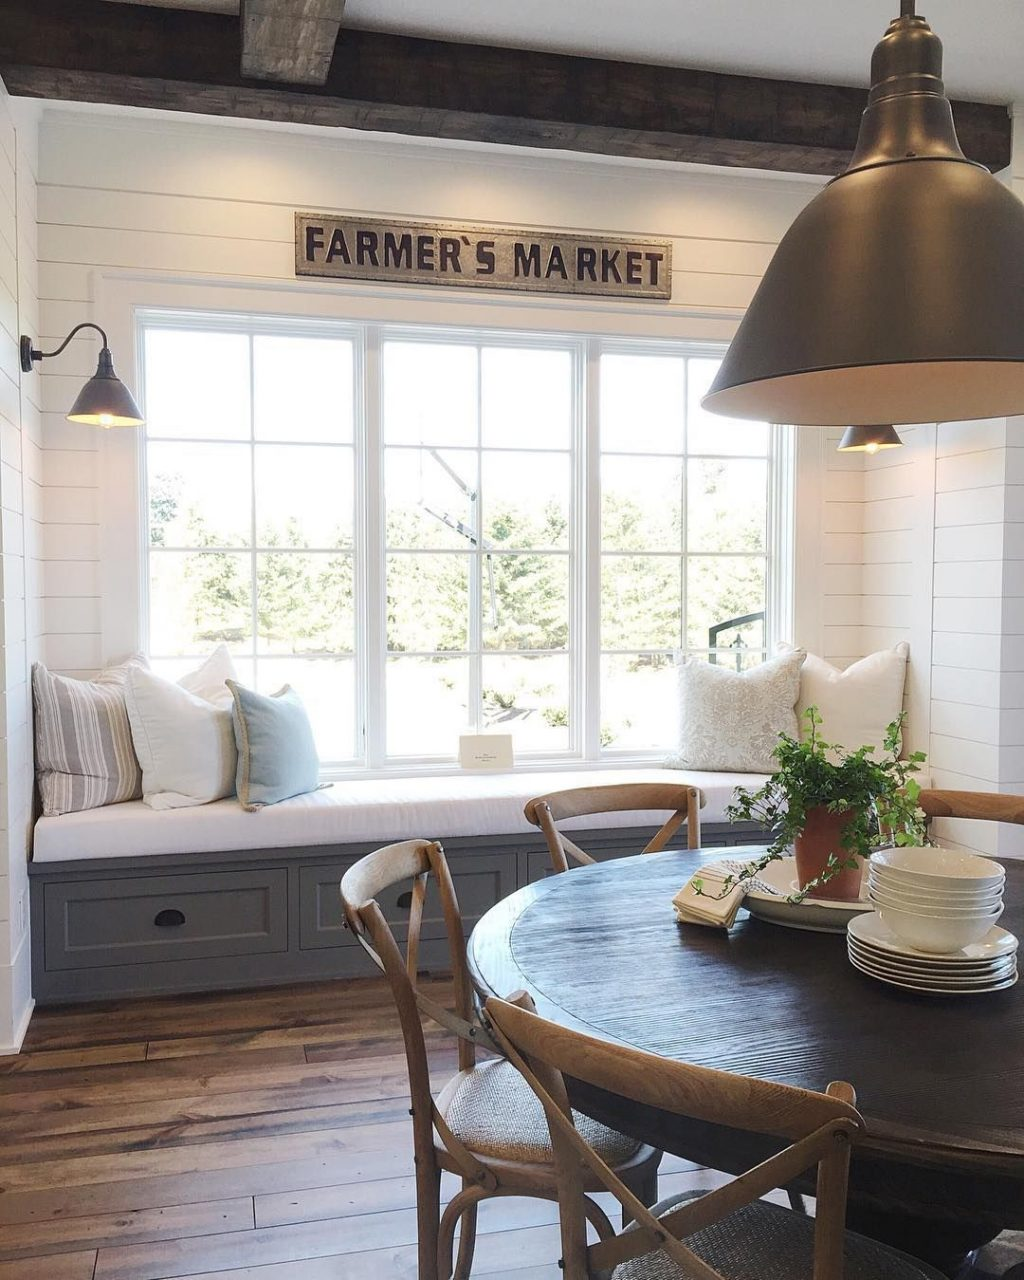 Window Seat And Breakfast Table Kitchen Home Decor Farmhouse